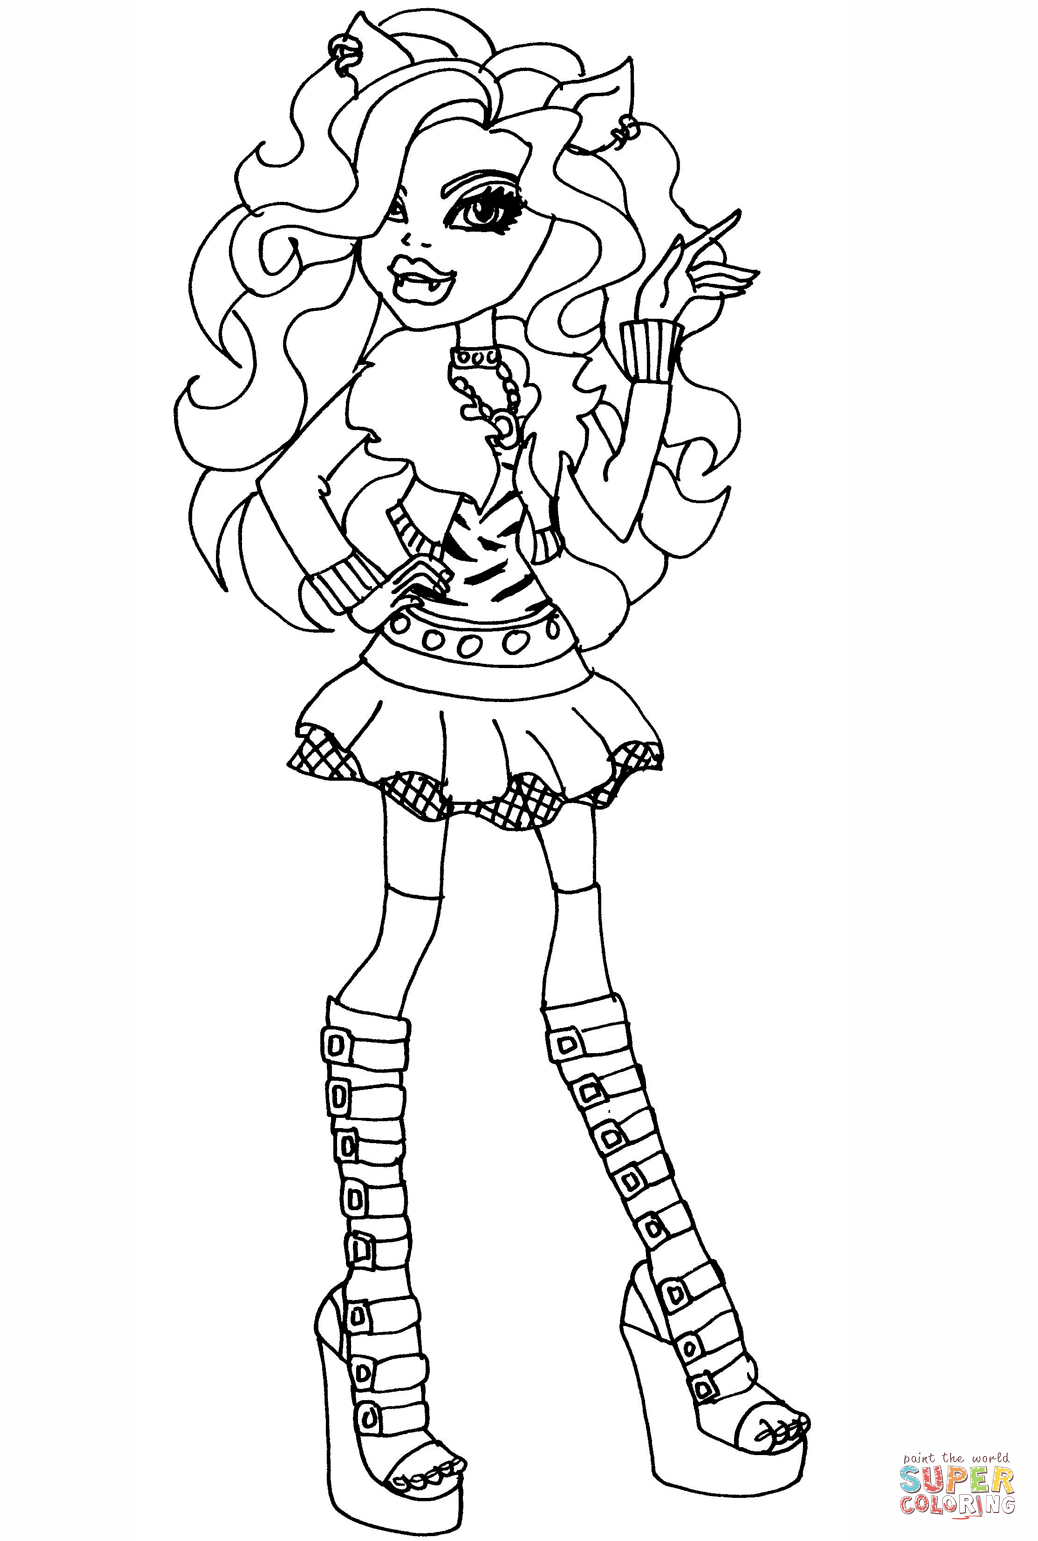 1038x1541 Monster High Clawdeen Wolf Coloring Page Free Printable Coloring